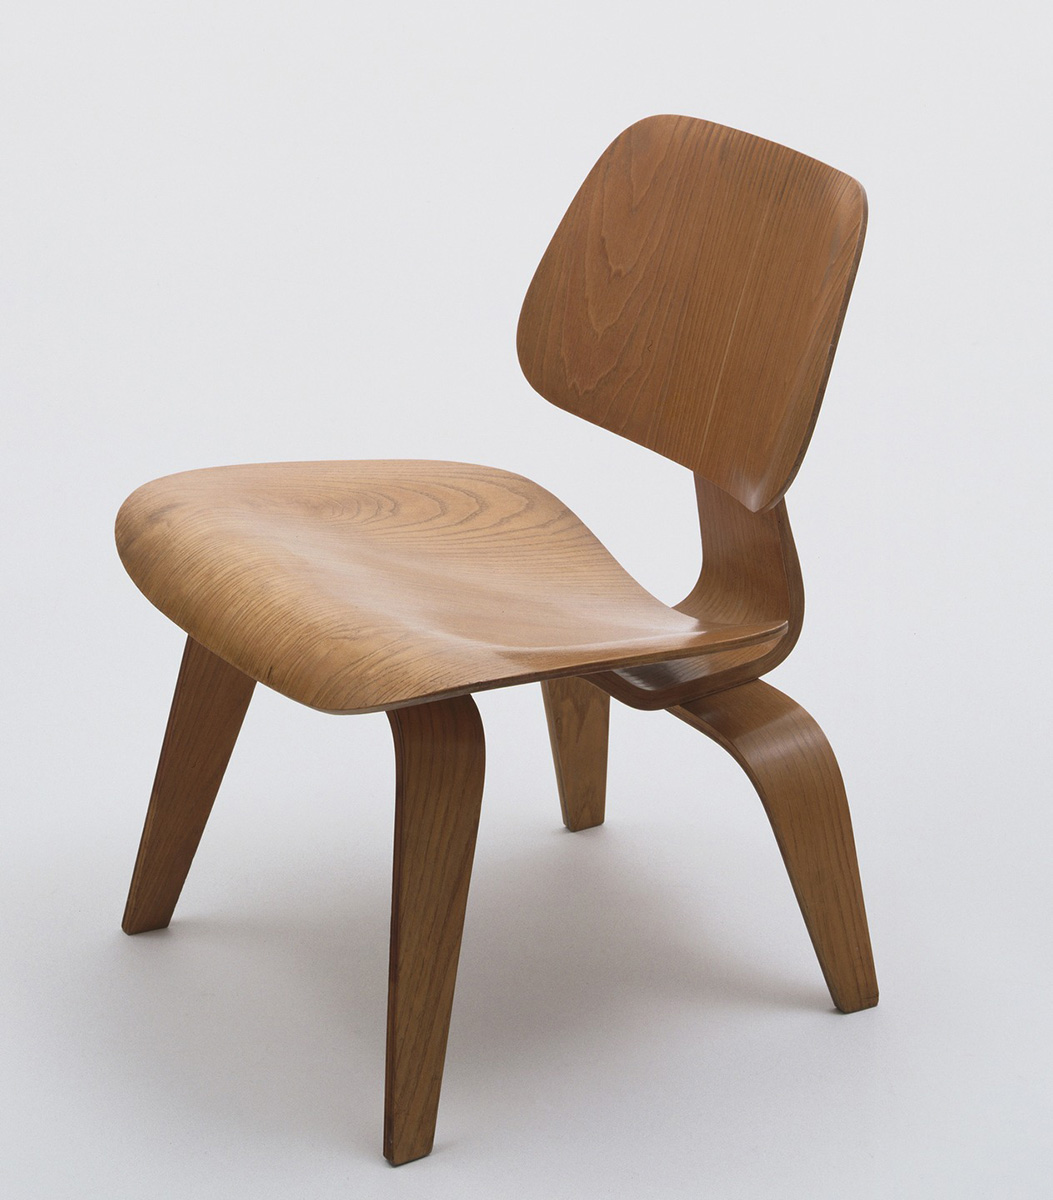 Charles and Ray Eames (Designers), Eames Molded Lounge Chair, 1960s. Eli and Edythe Broad Art Museum, Michigan State University, gift of the Estate of Ila H. Church.